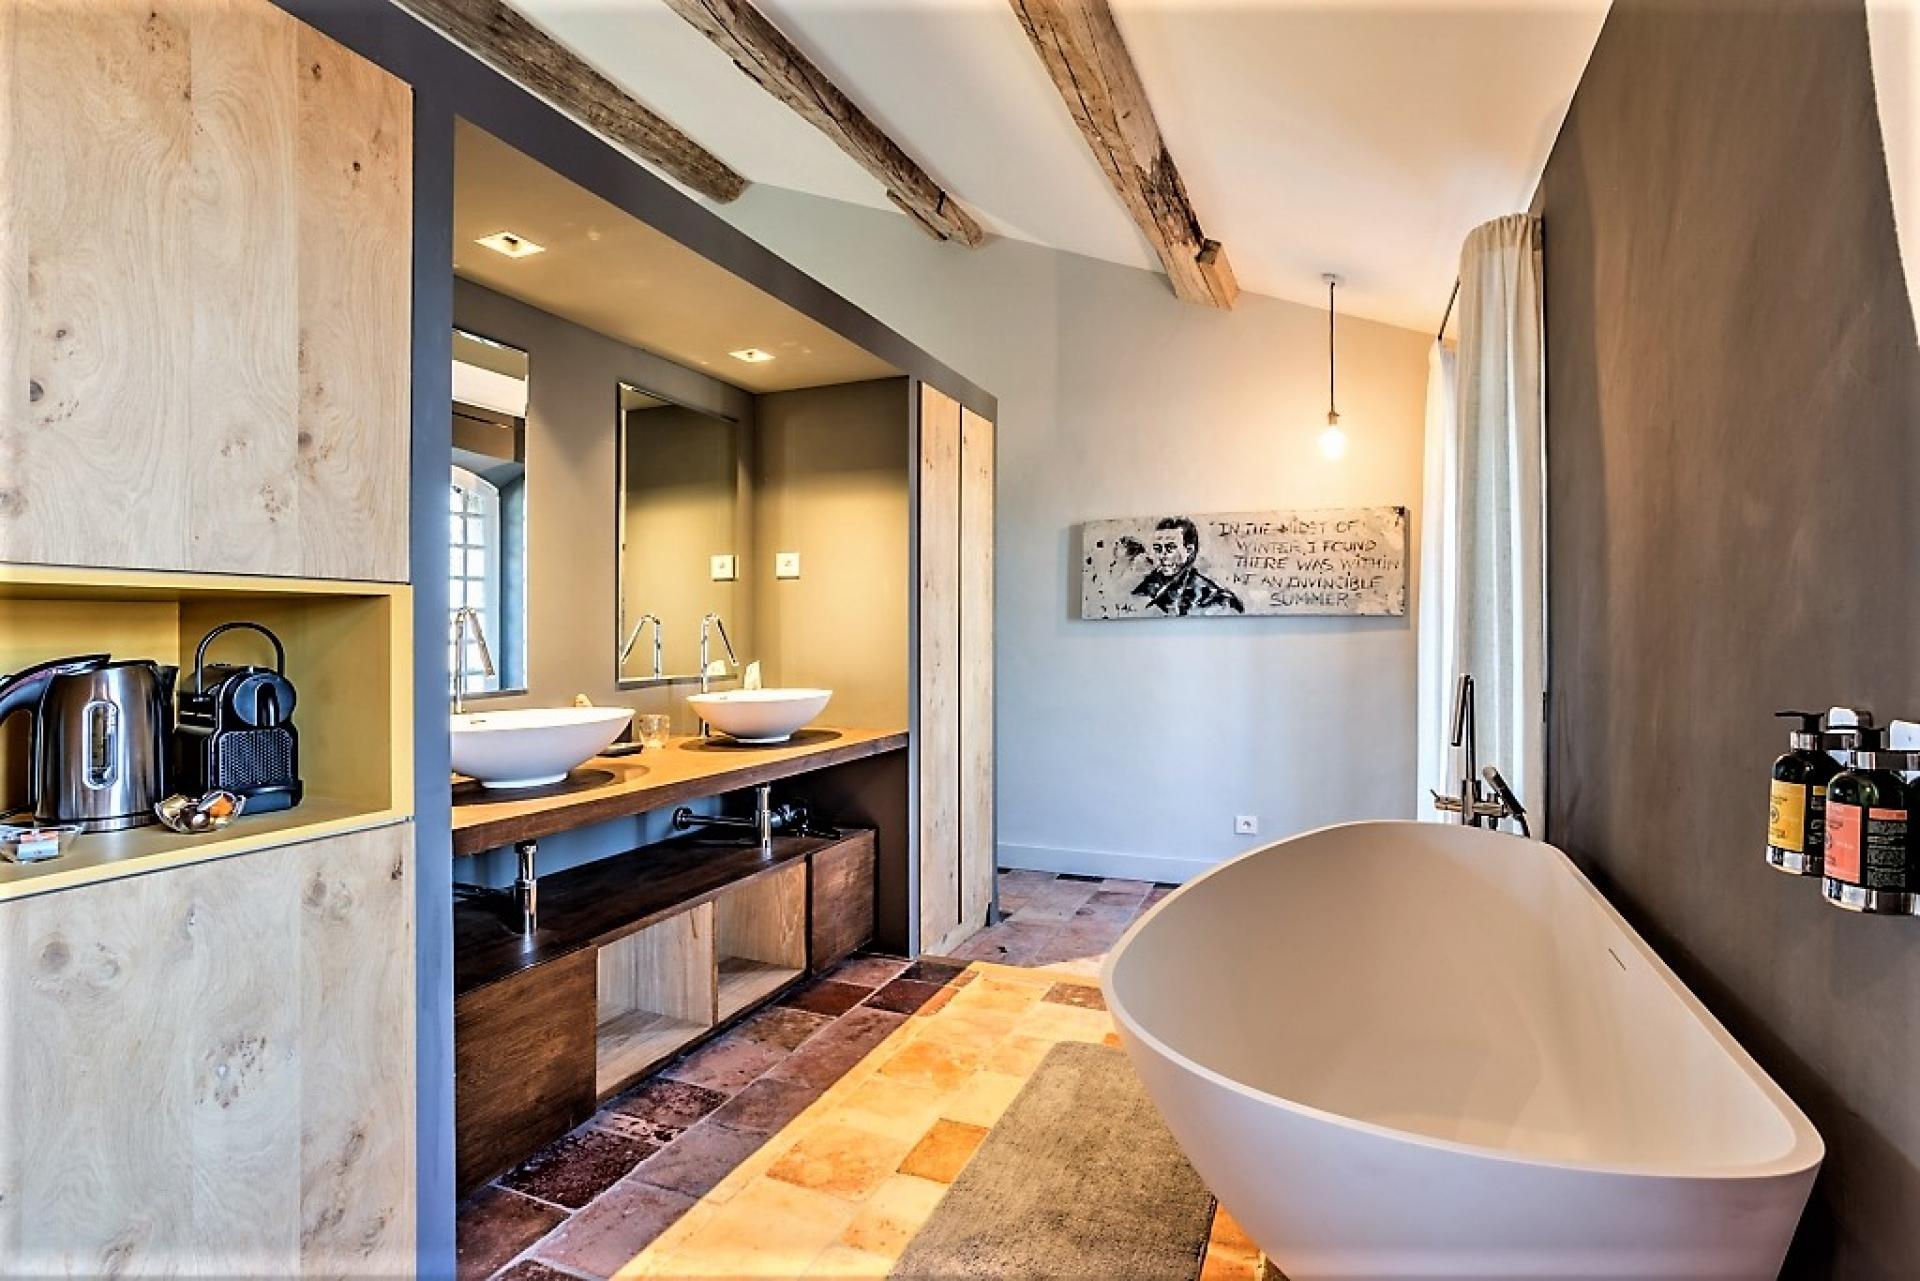 A BATHROOM IN AN HOLIDAY VILLA RENTAL IN PROVENCE